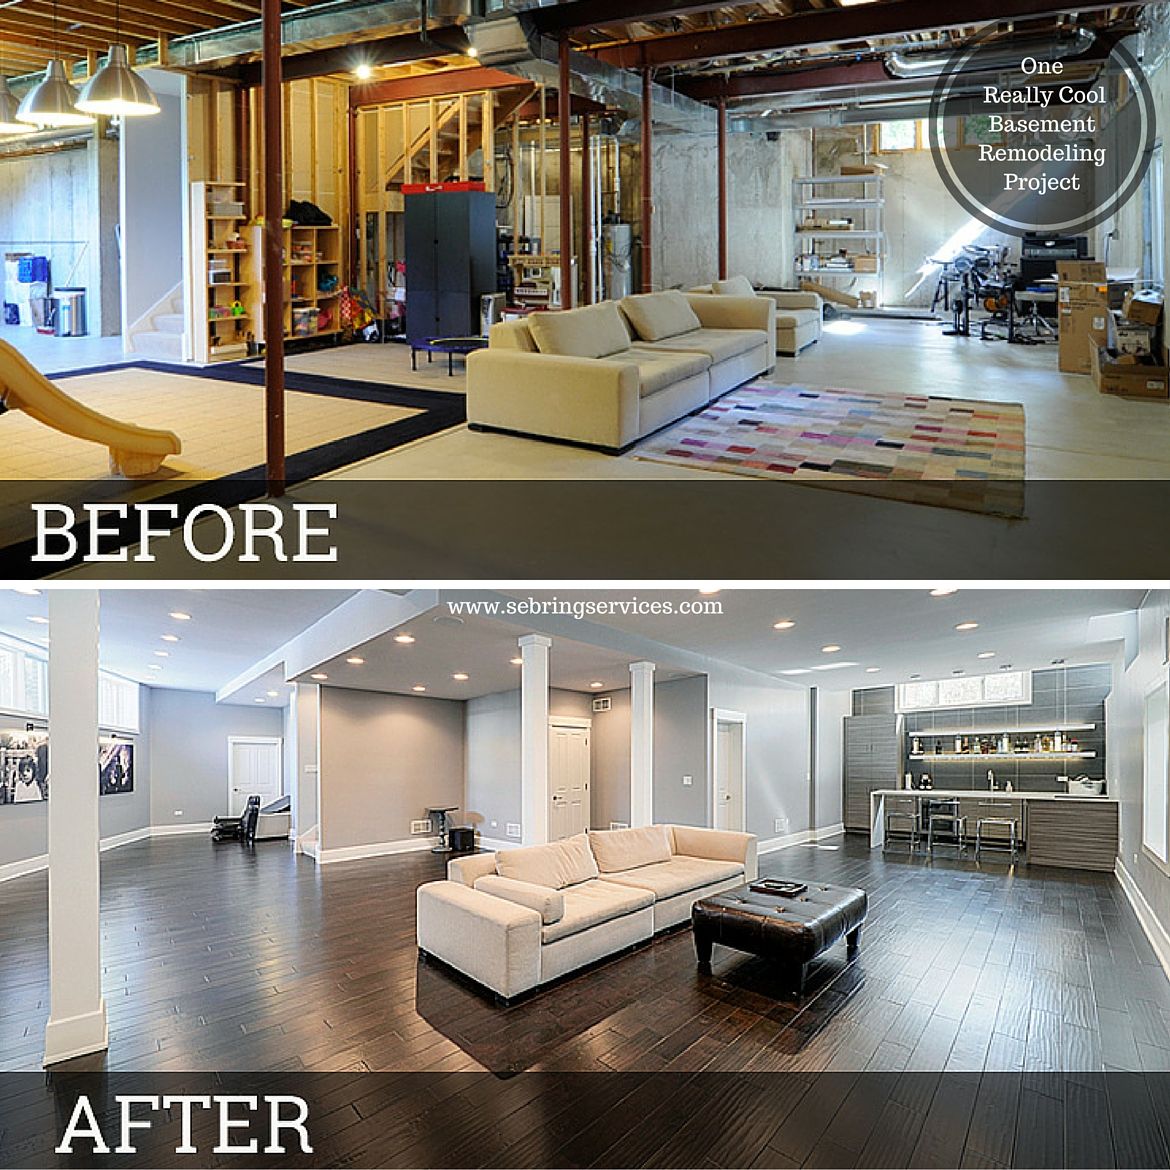 Home Design Basement Ideas: Before & After: One Really Cool Basement Remodeling